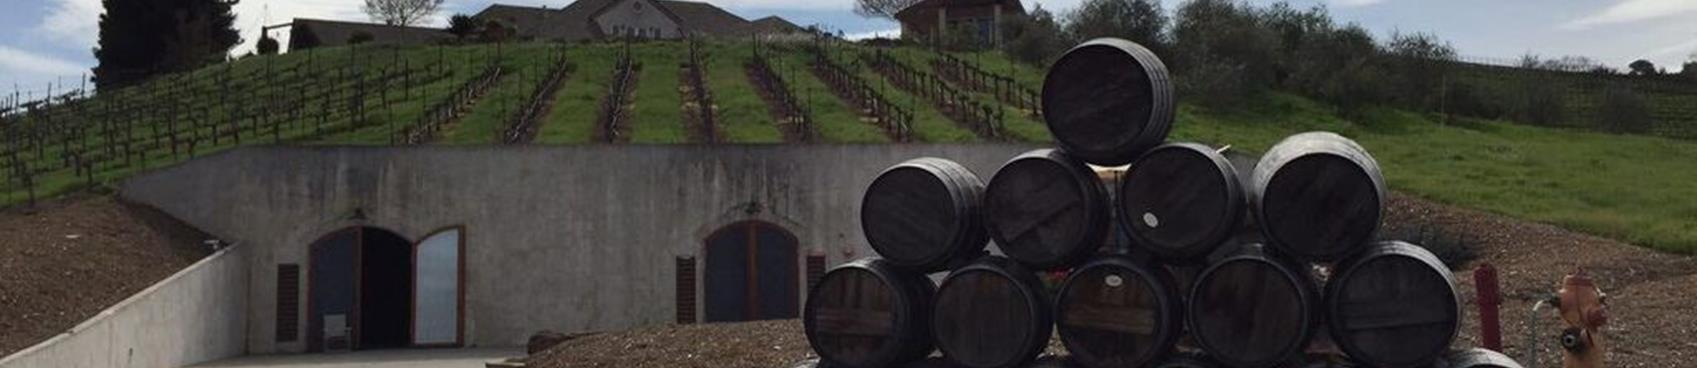 A image of Forthright Winery